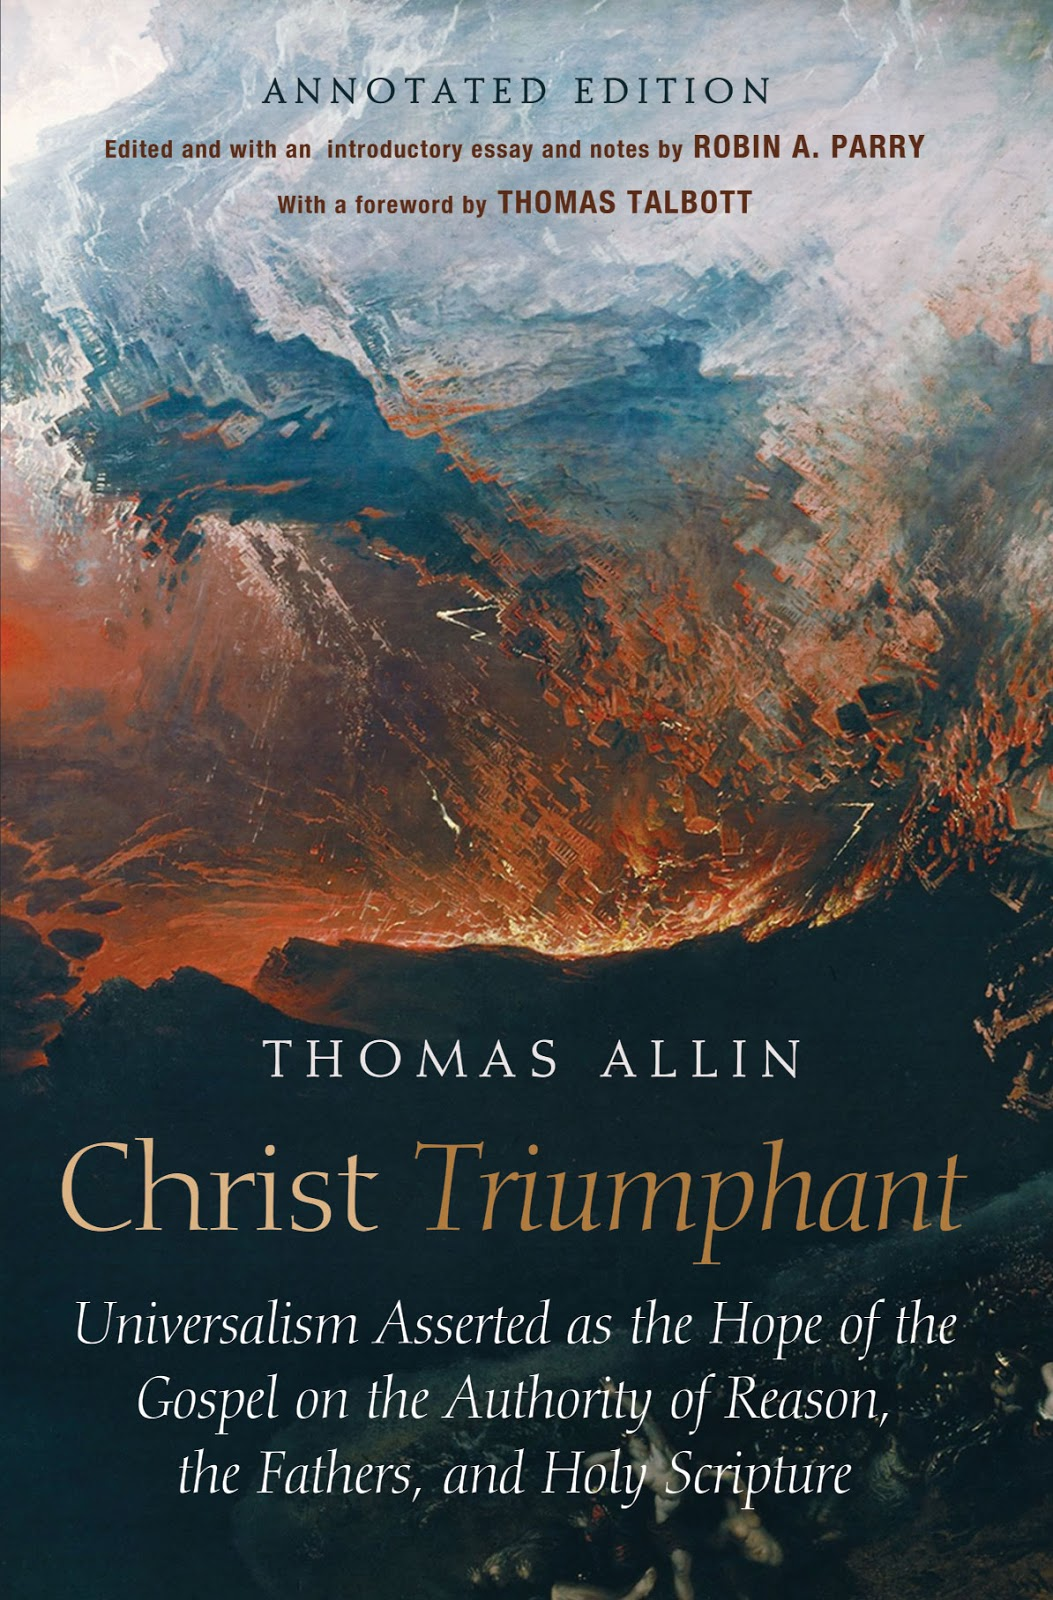 New edition of Thomas Allin's Christ Triumphant